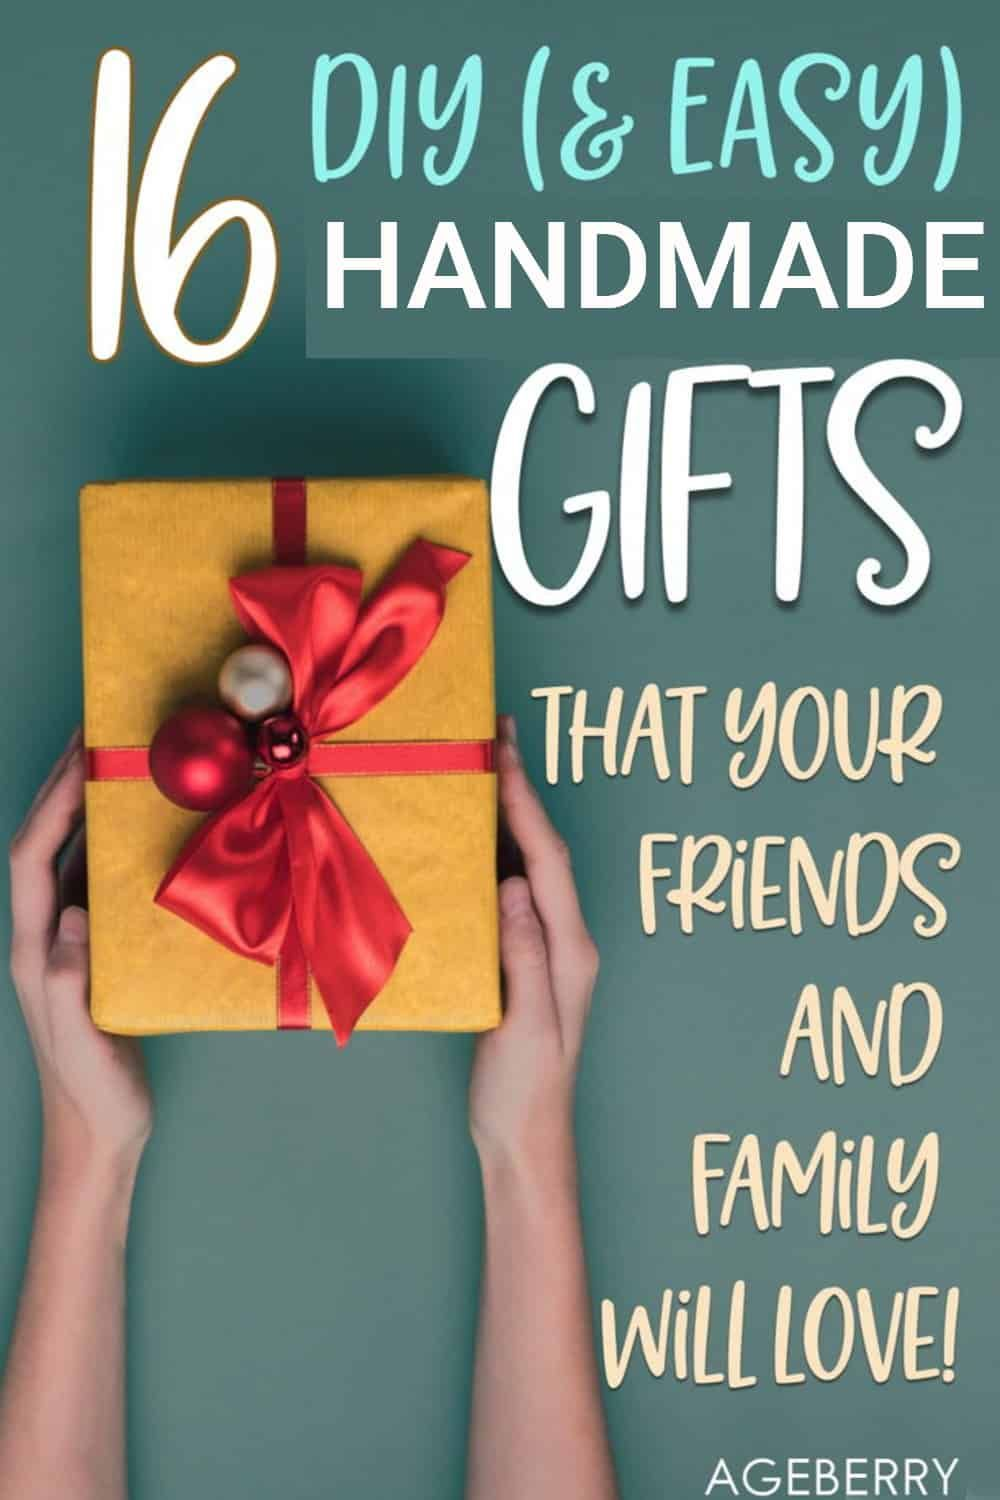 Last minute Christmas gifts DIY - 16 sewing tutorials